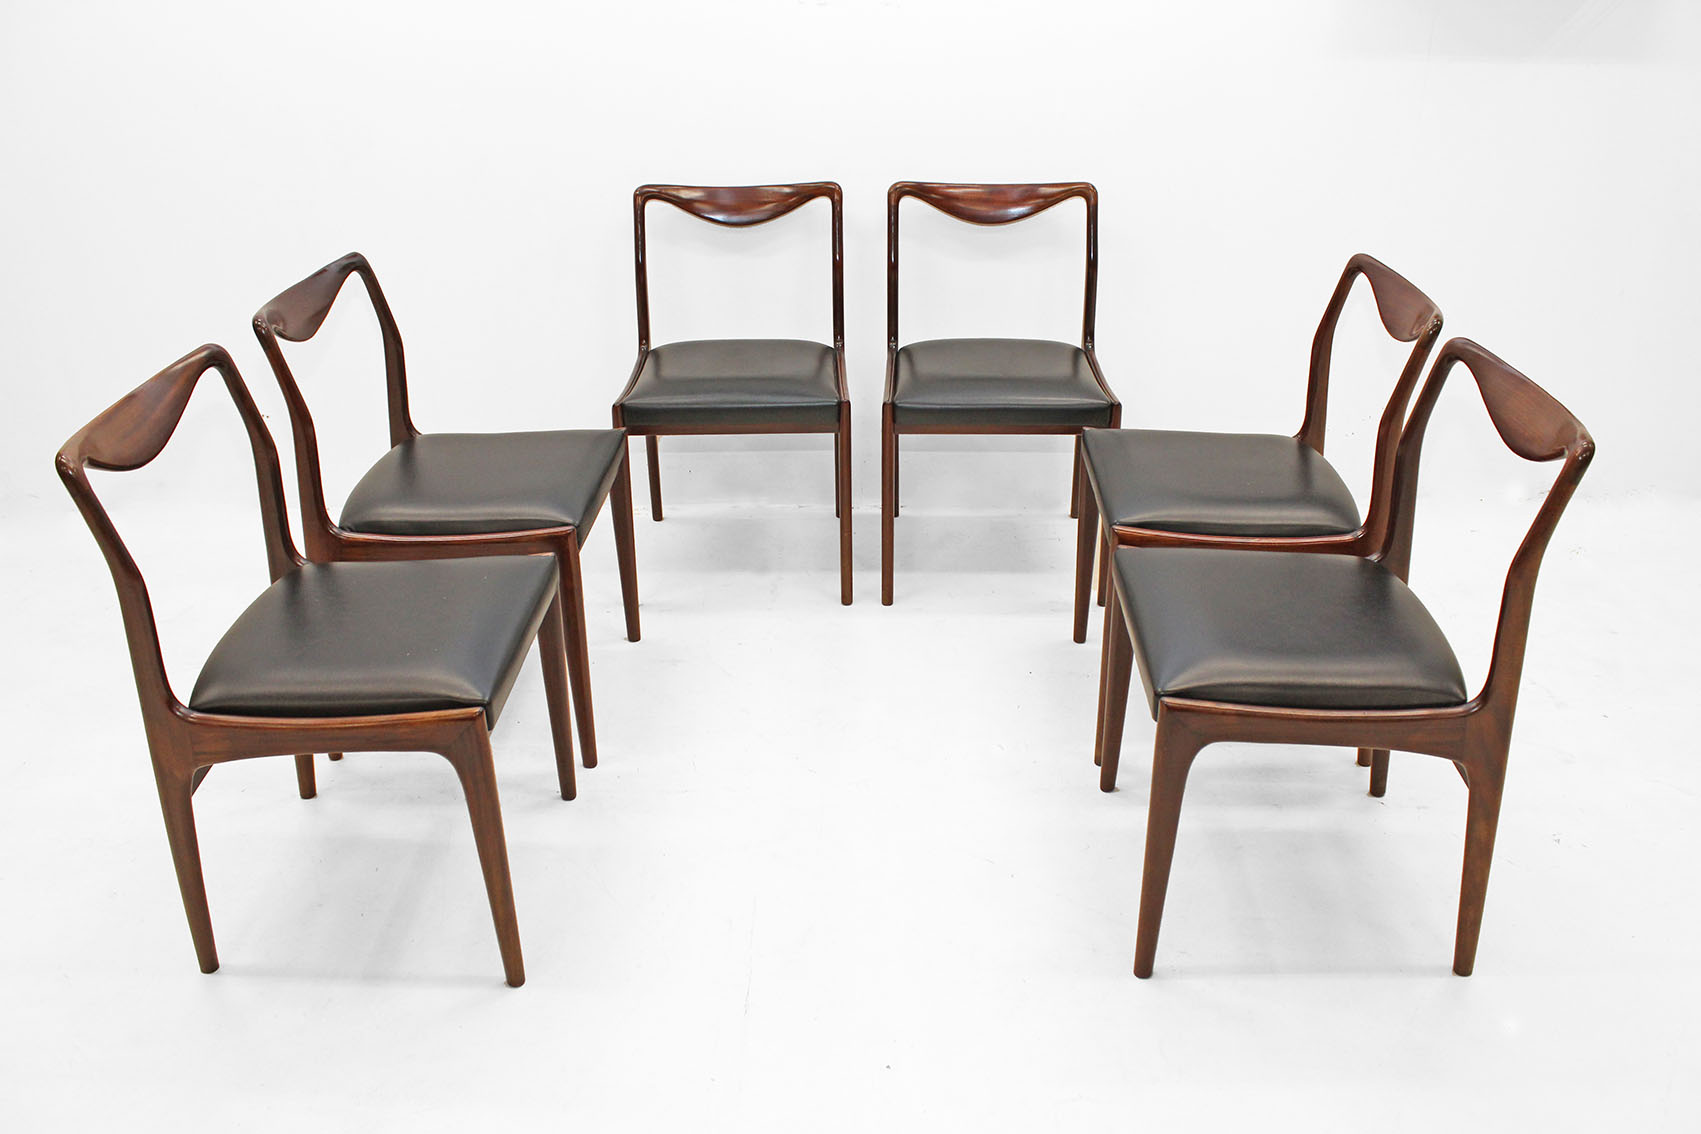 set of 6 chairs in afromosiateak